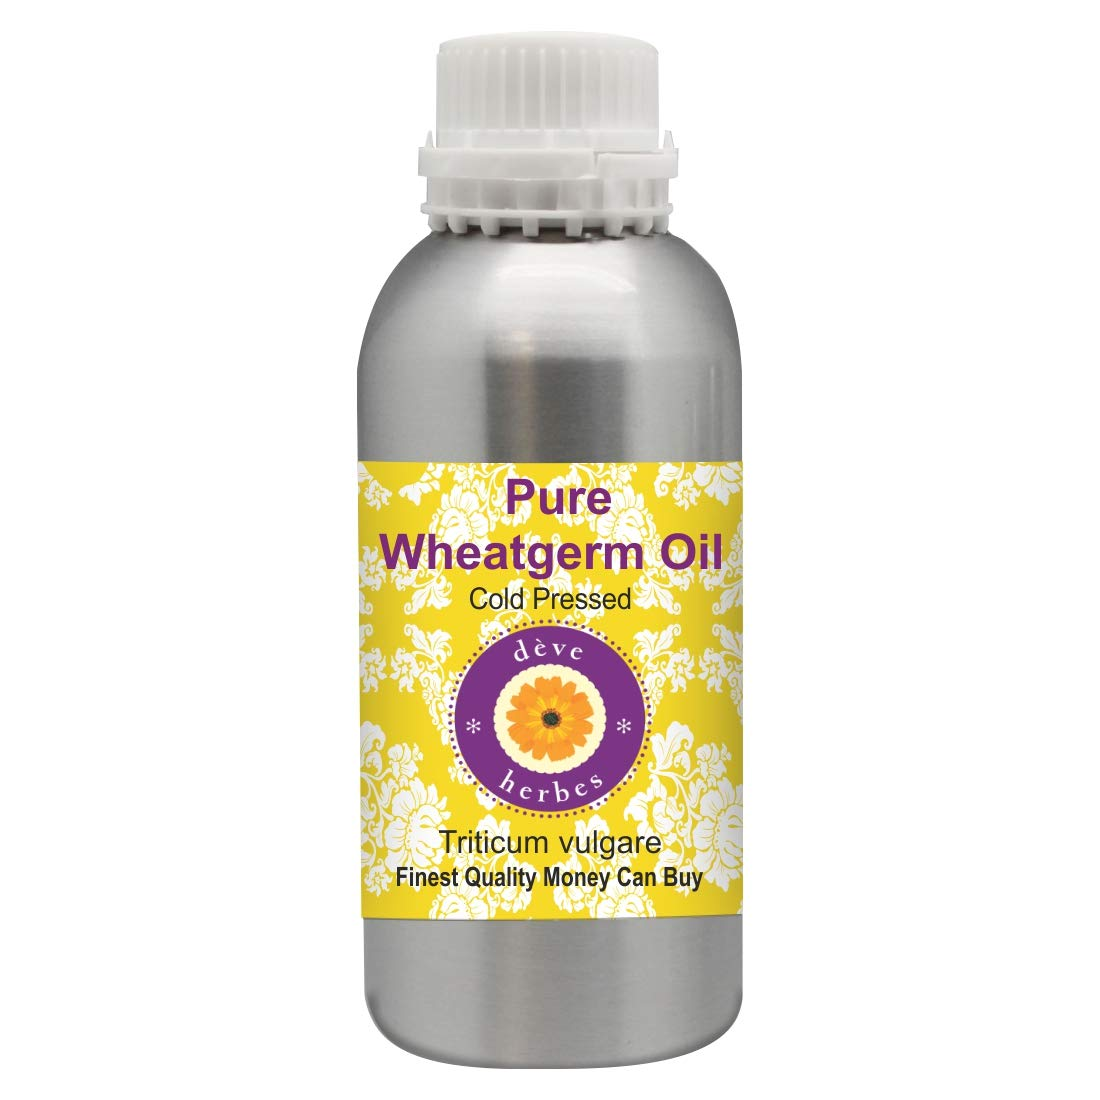 Deve Herbes Pure Sales for sale Wheatgerm Oil vulgare 100% Natural Branded goods Th Triticum